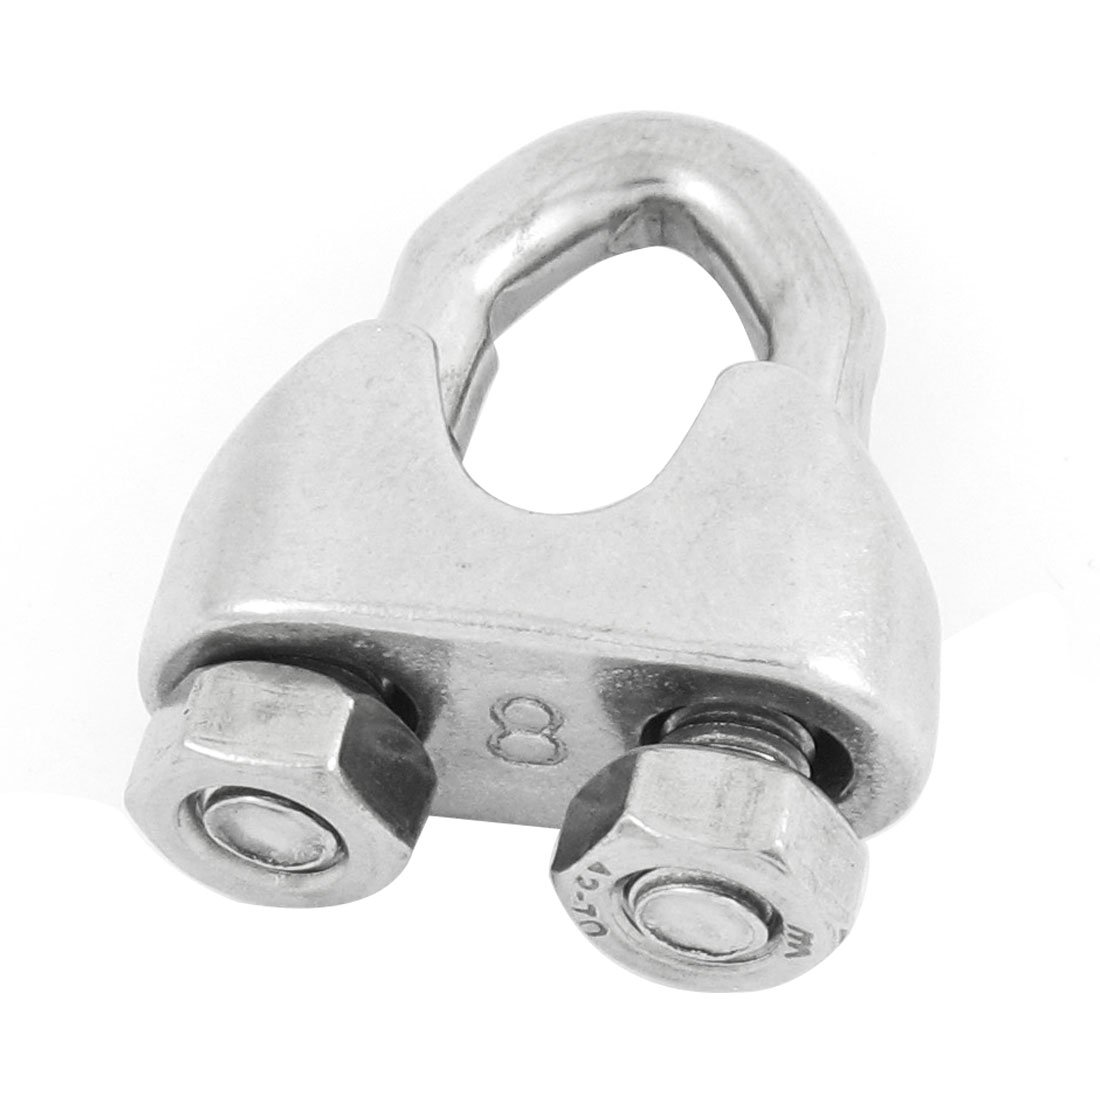 uxcell 5.7mm Thread Fastener U Shape Bolt Clamp Clip for 10mm 5/16 ...